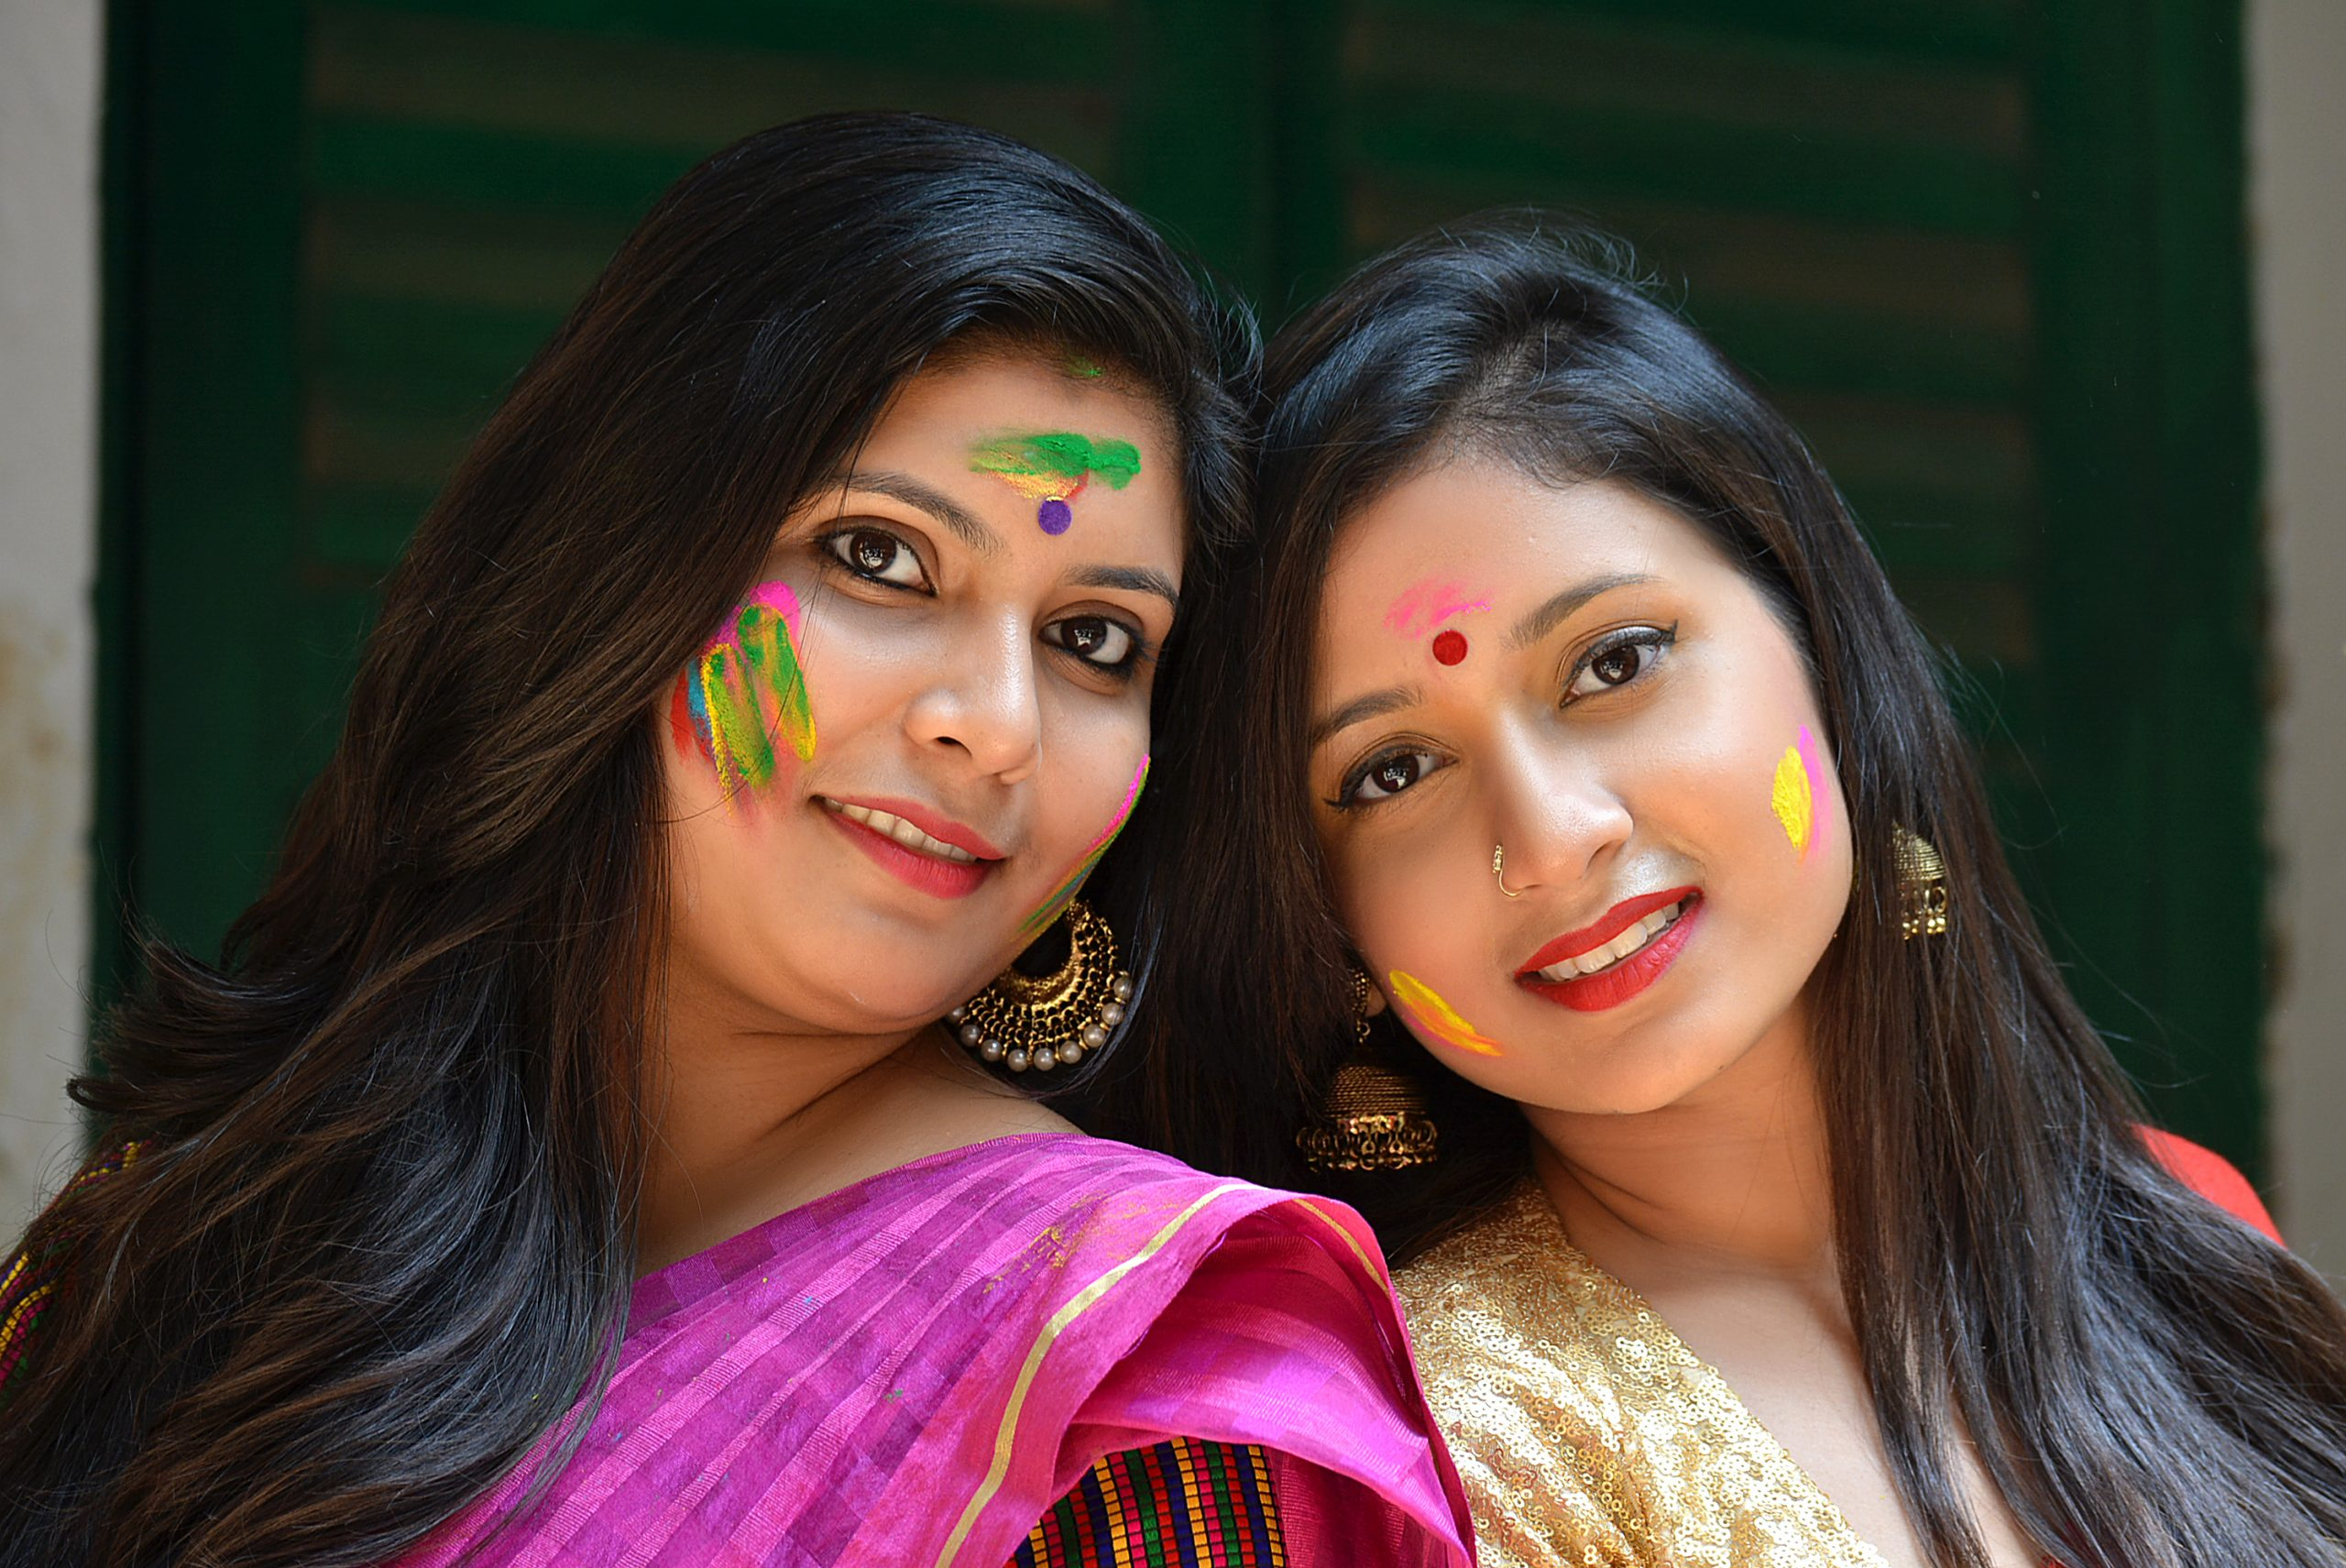 Indian women celebrating Holi festival